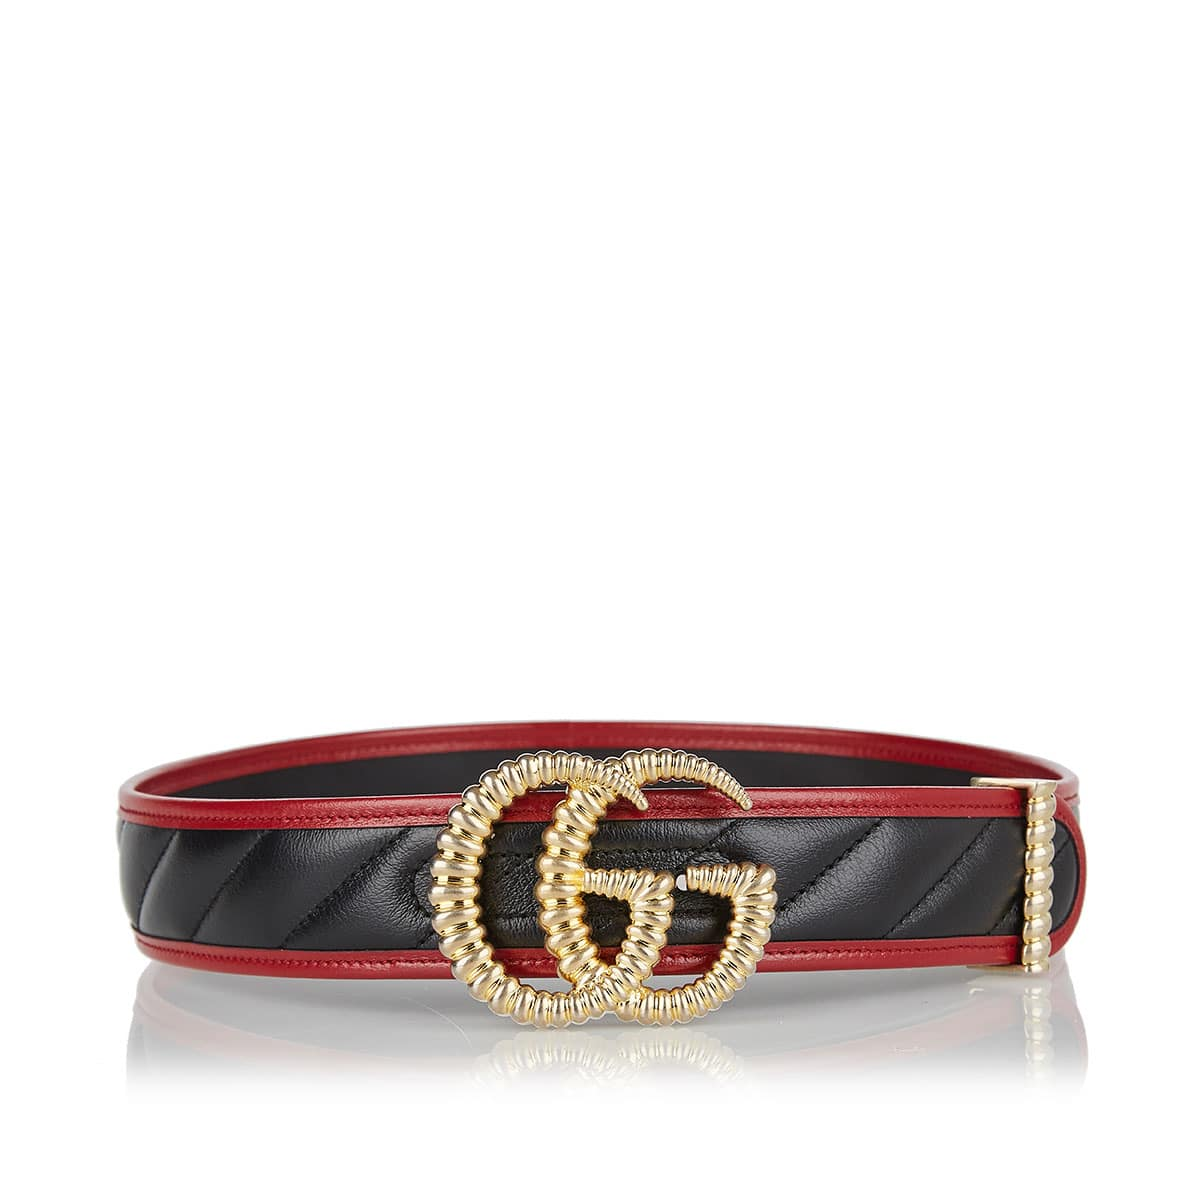 GG quilted leather belt